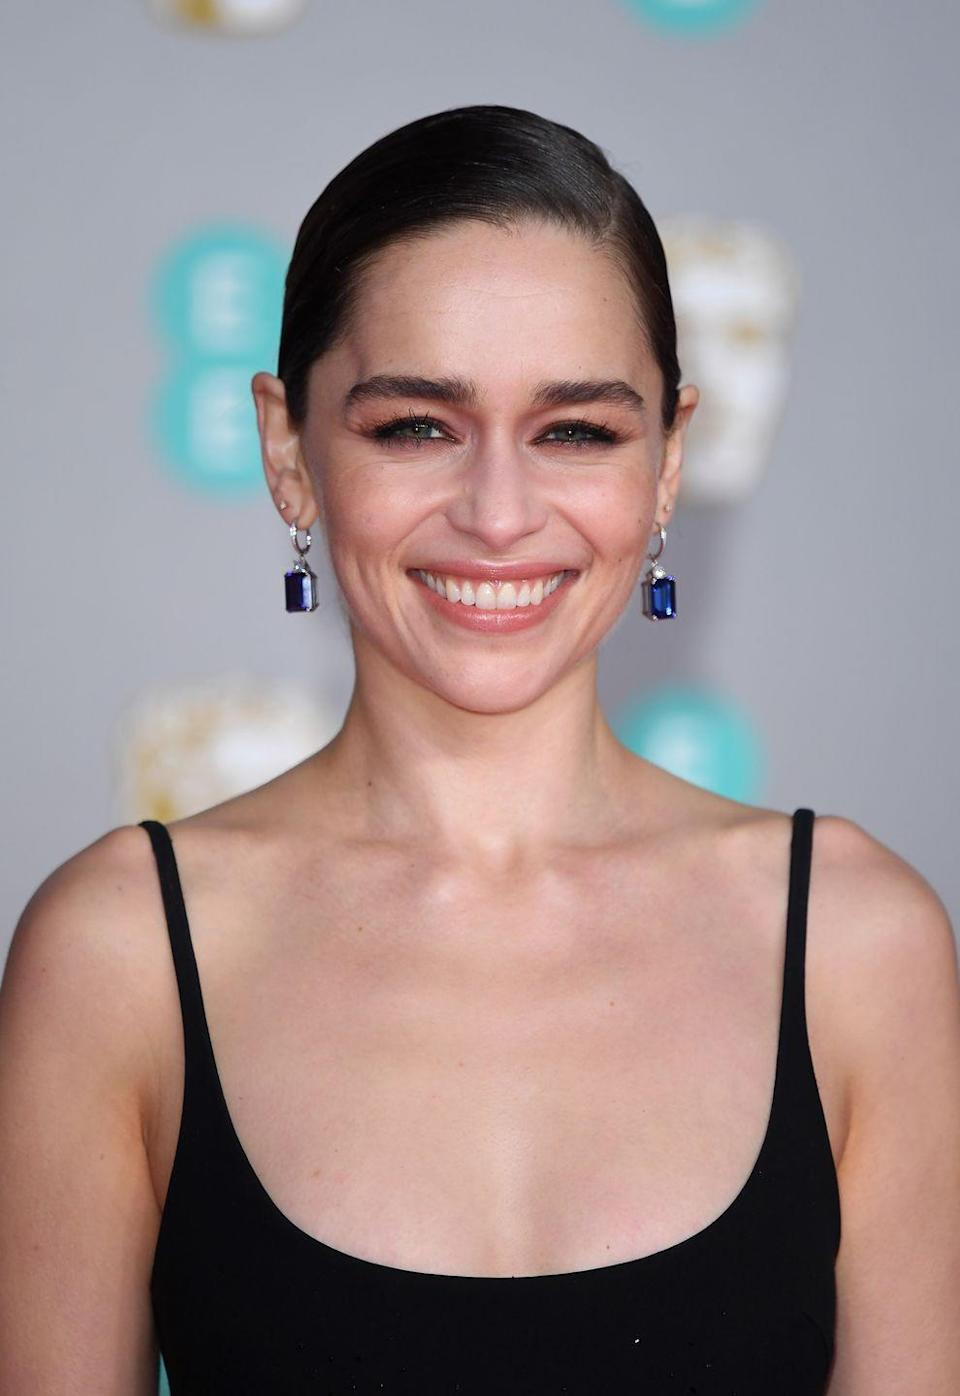 """<p>While Clarke was trying to make a name for herself as a movie star and not just the star of <em>Game of Thrones</em>, she took a role in <em>Terminator Genisys</em>…something she now regrets. </p><p>In an interview with <a href=""""https://www.vanityfair.com/hollywood/2018/05/emilia-clarke-cover-story"""" rel=""""nofollow noopener"""" target=""""_blank"""" data-ylk=""""slk:Vanity Fair"""" class=""""link rapid-noclick-resp""""><em>Vanity Fair</em></a>, she said that she watched director Alan Taylor, who frequently directed <em>GoT</em>, get """"eaten and chewed up on <em>Terminator</em>. He was not the director I remembered. He didn't have a good time. No one had a good time."""" </p><p>She added that she was """"relieved"""" that the film didn't do well at the box office so that she wouldn't have to do any sequels.</p>"""